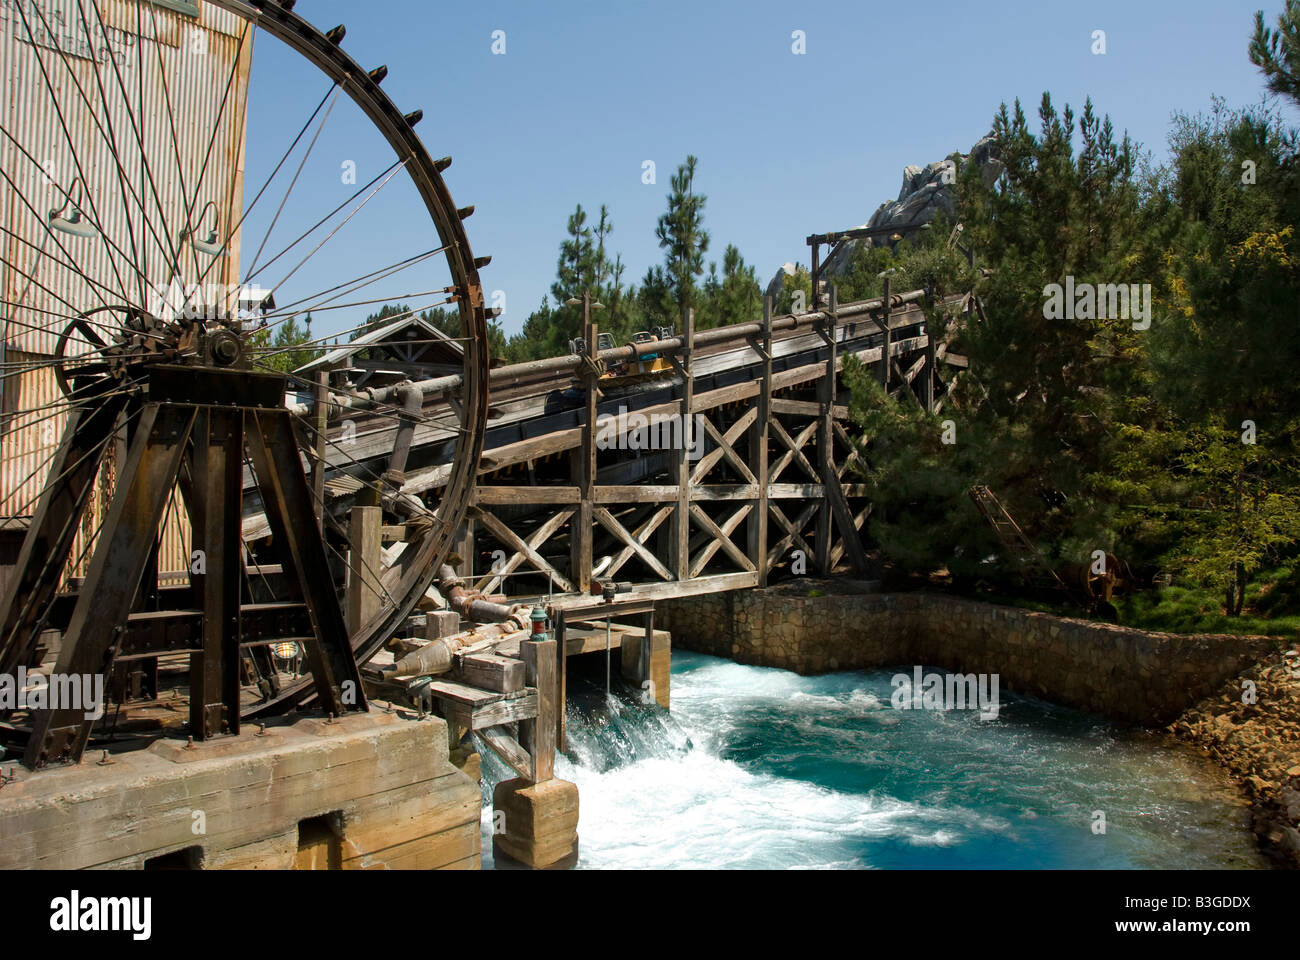 Disneyland Resort Anaheim Kalifornien Unterhaltung Grizzly River